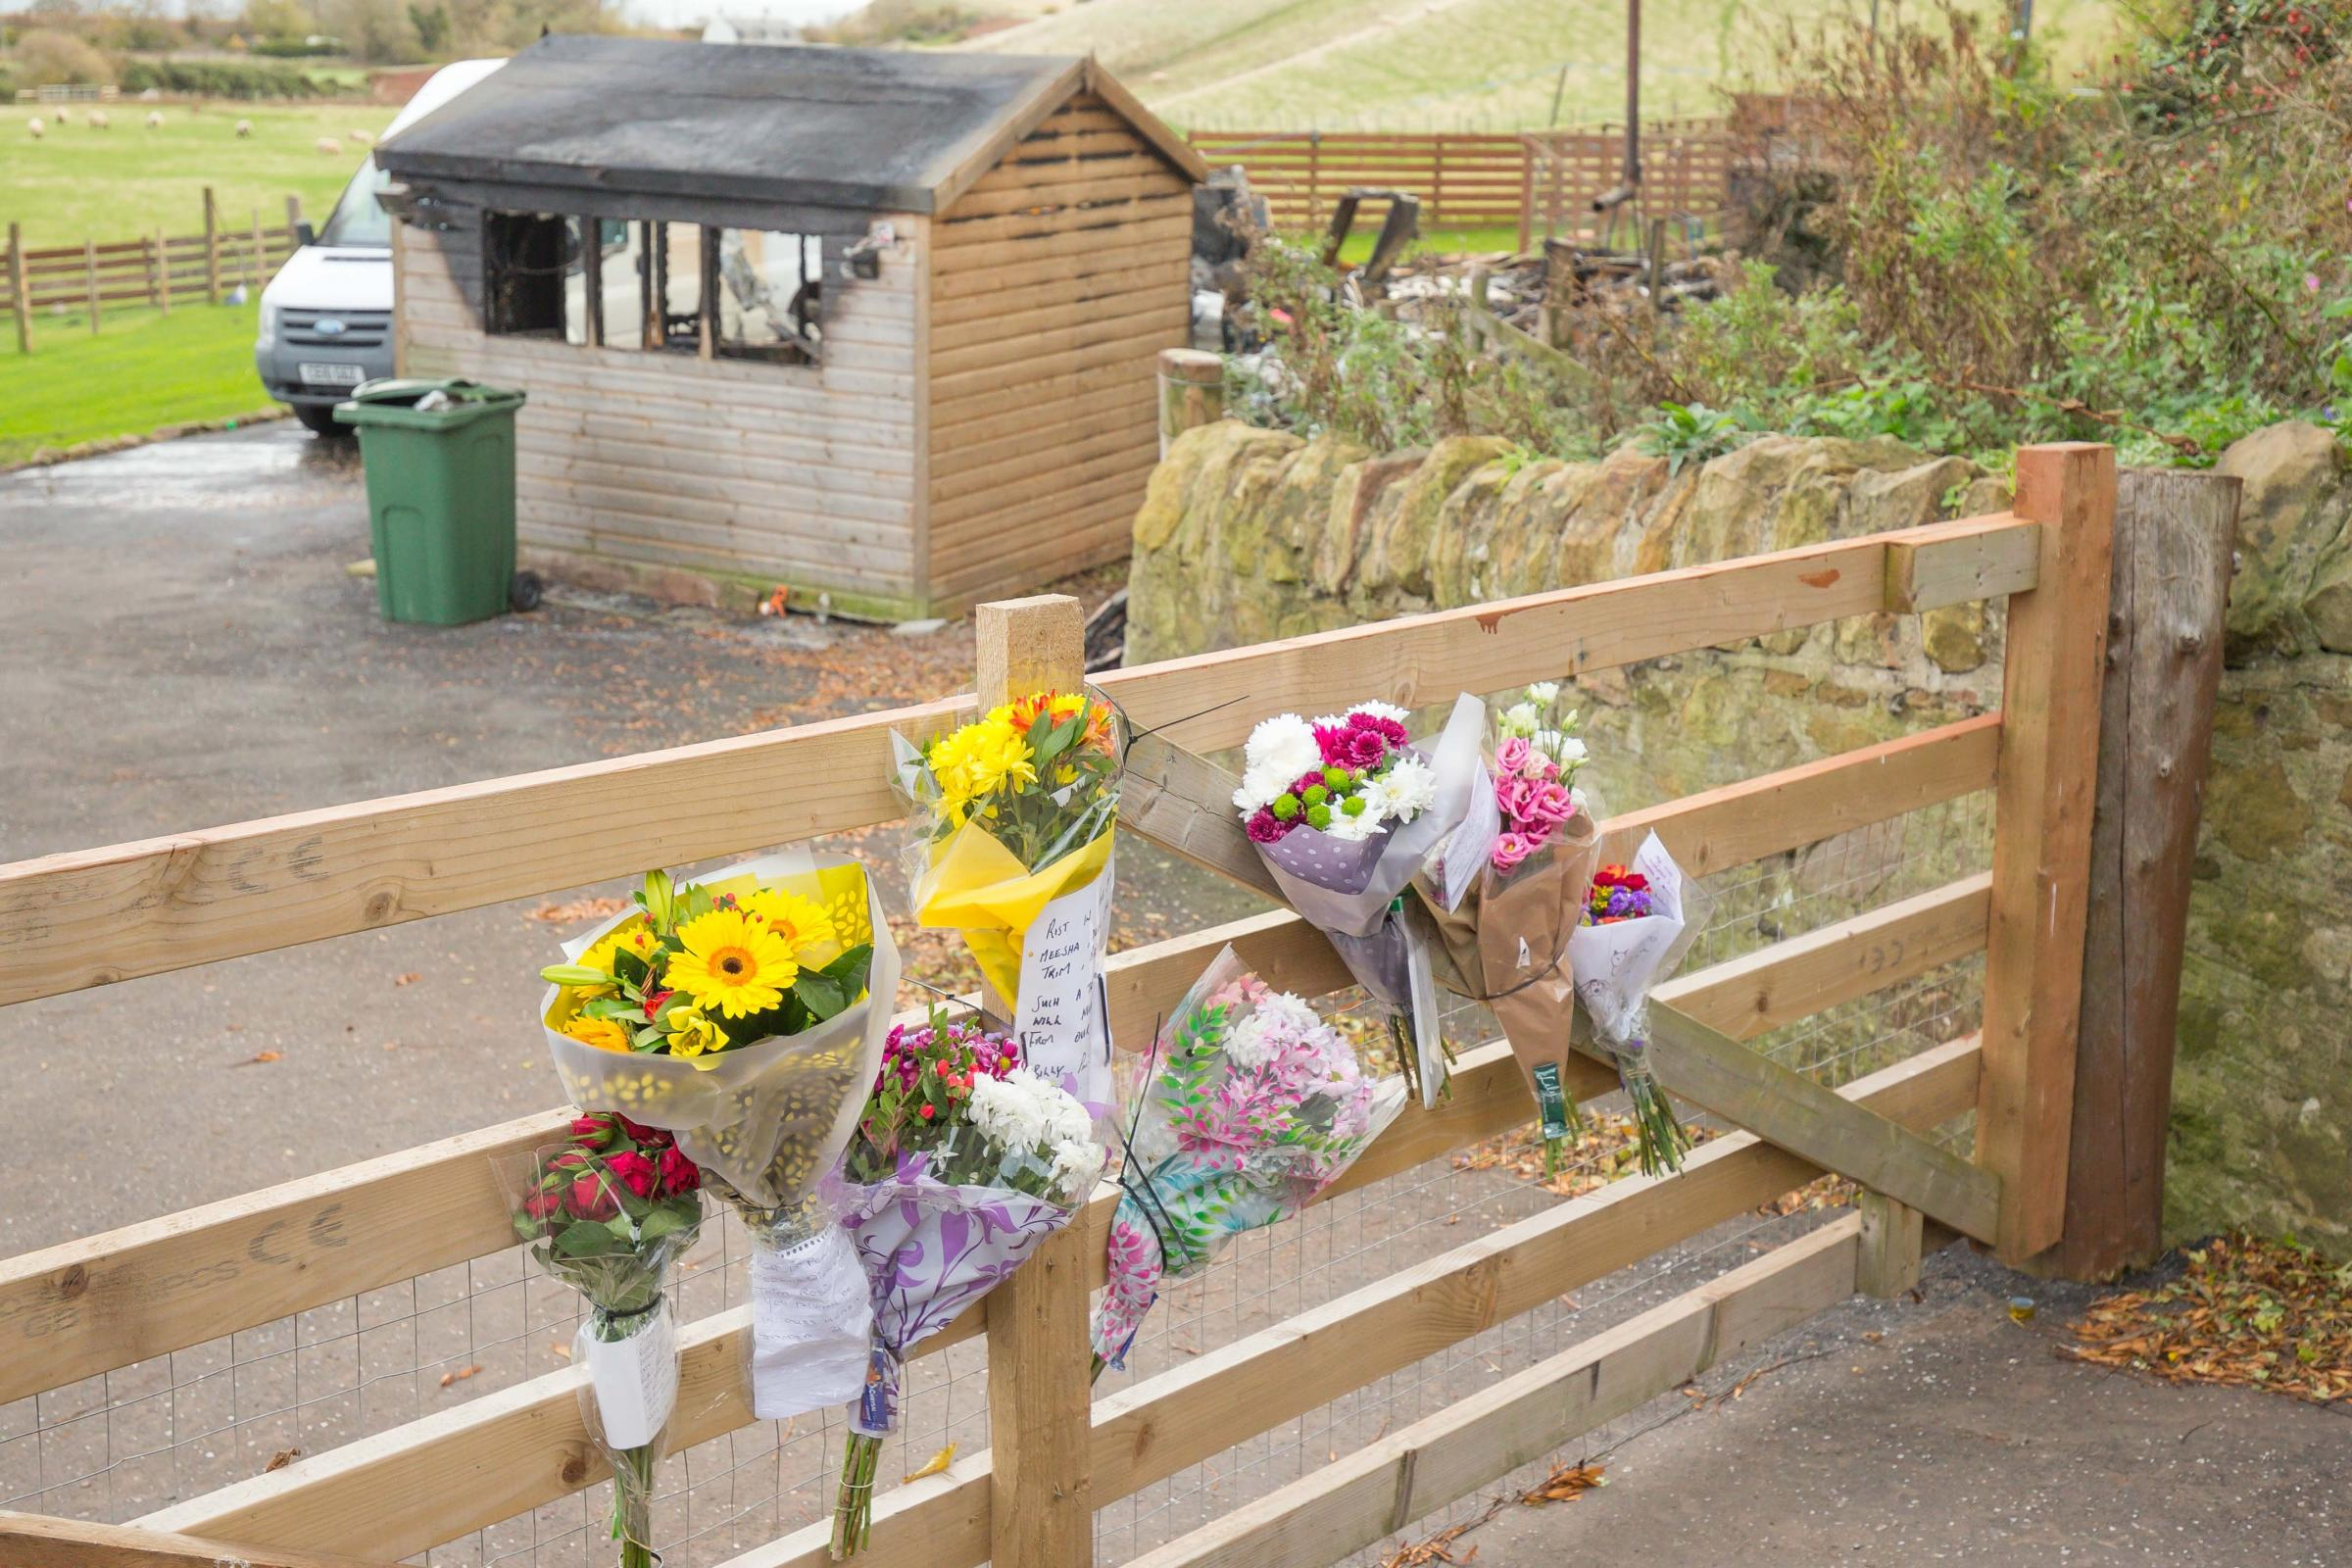 Flowers were left at the gate of Julie Melville's home following a fire in her caravan at Thornfield, near Innerwick, which claimed her life. Picture: Gordon Bell